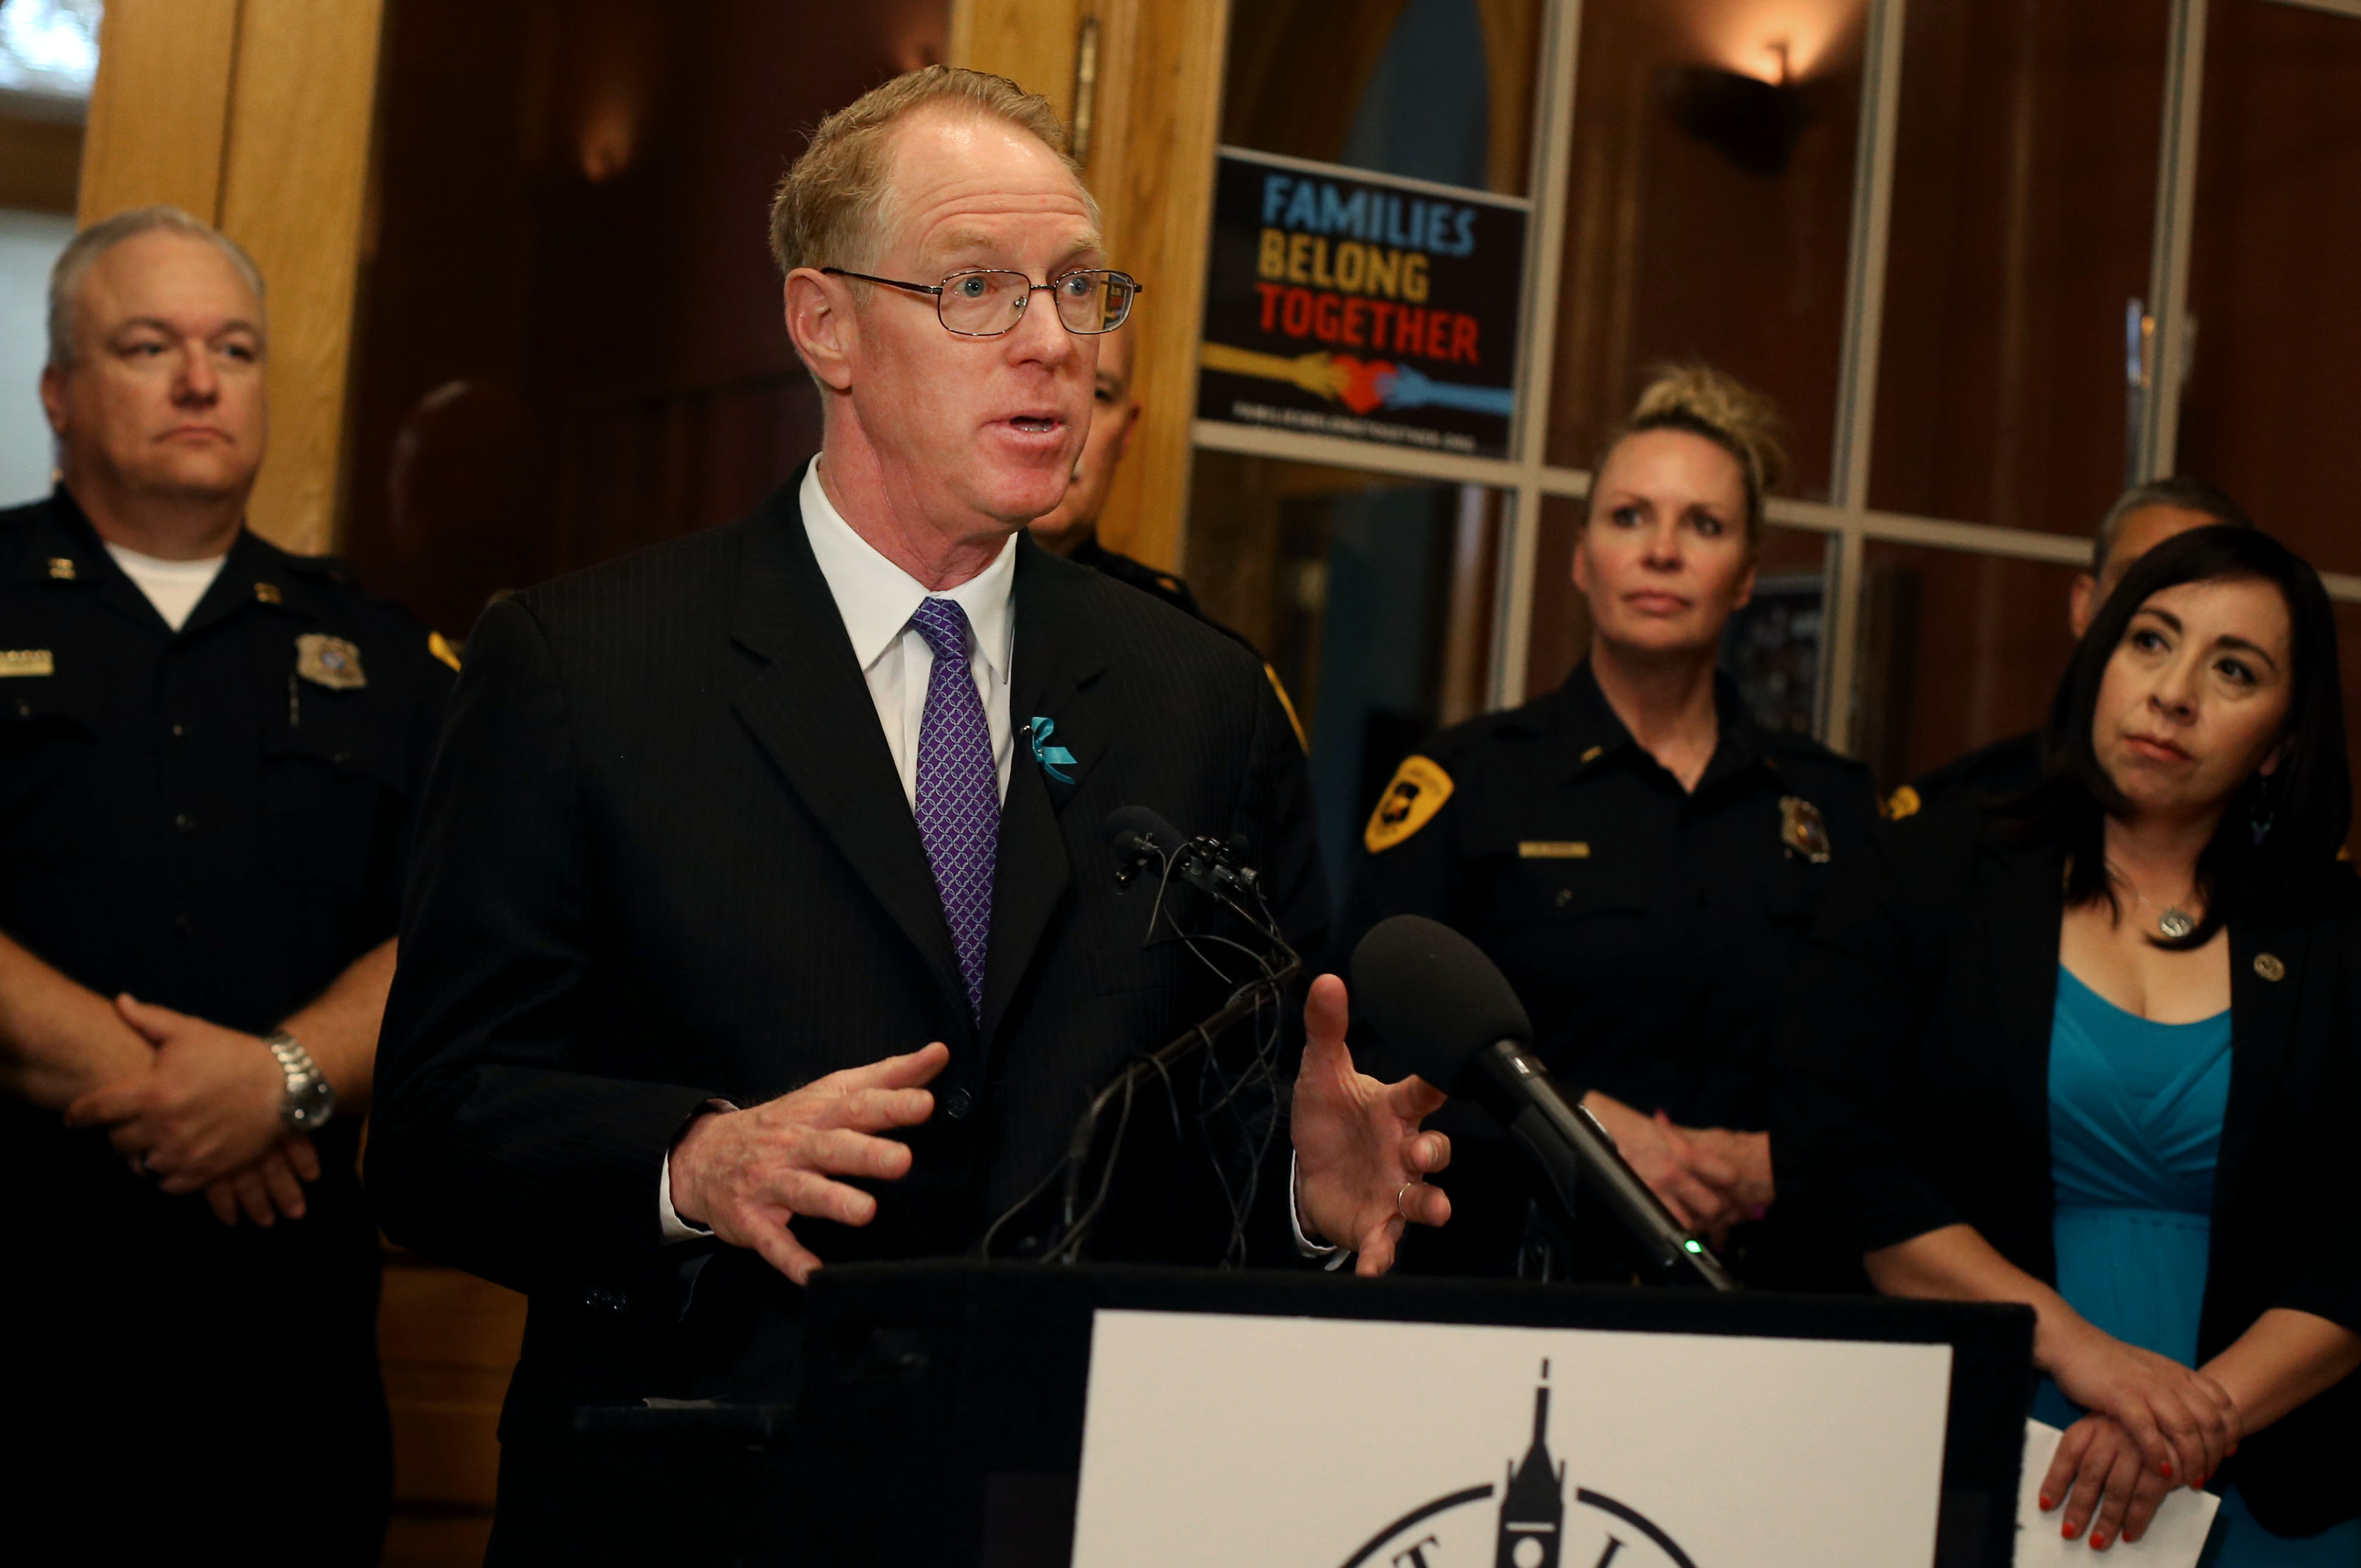 Paul Cassell, a former federal judge and law professor at the University of Utah, endorses the Start by Believing campaign during a press conference in Salt Lake City on Wednesday, April 3, 2019. Start by Believing is a public awareness program developed by End Violence Against Women International designed to address the issue of many victims not receiving the support they need when they choose to report having been a victim of sexual assault.